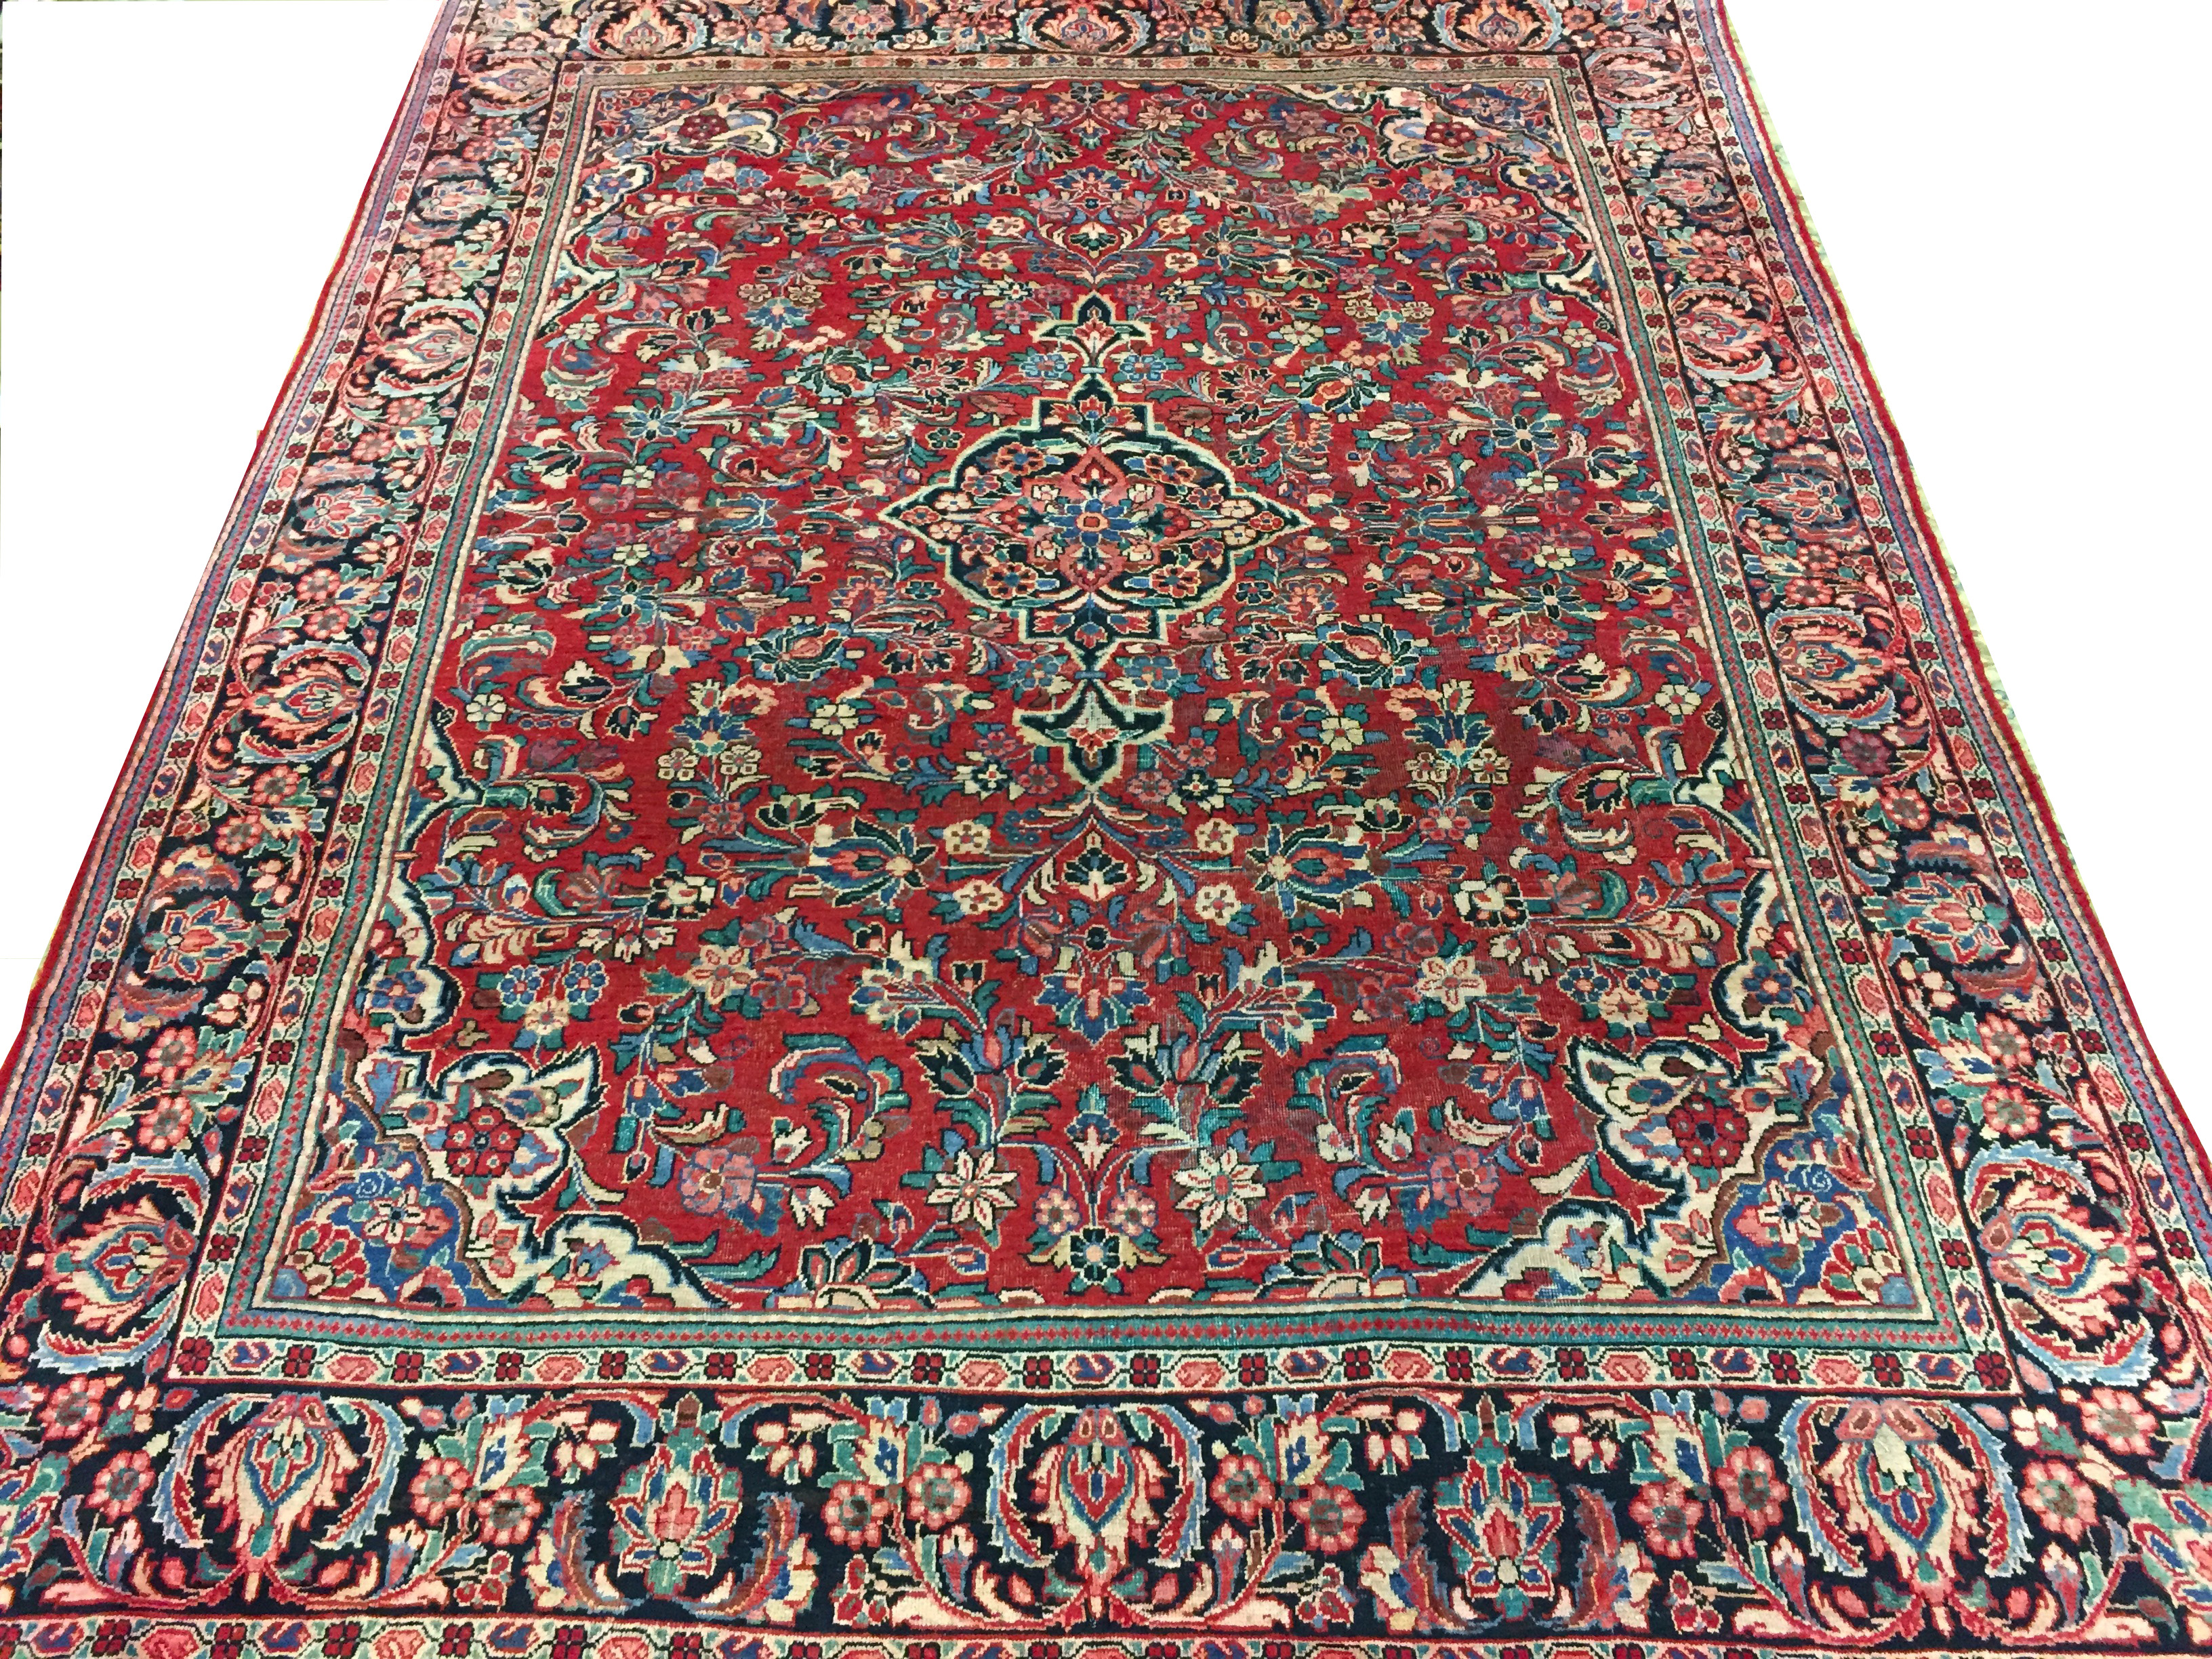 9x12 Traditional Hand Knotted Wool Area Rug - MR0579